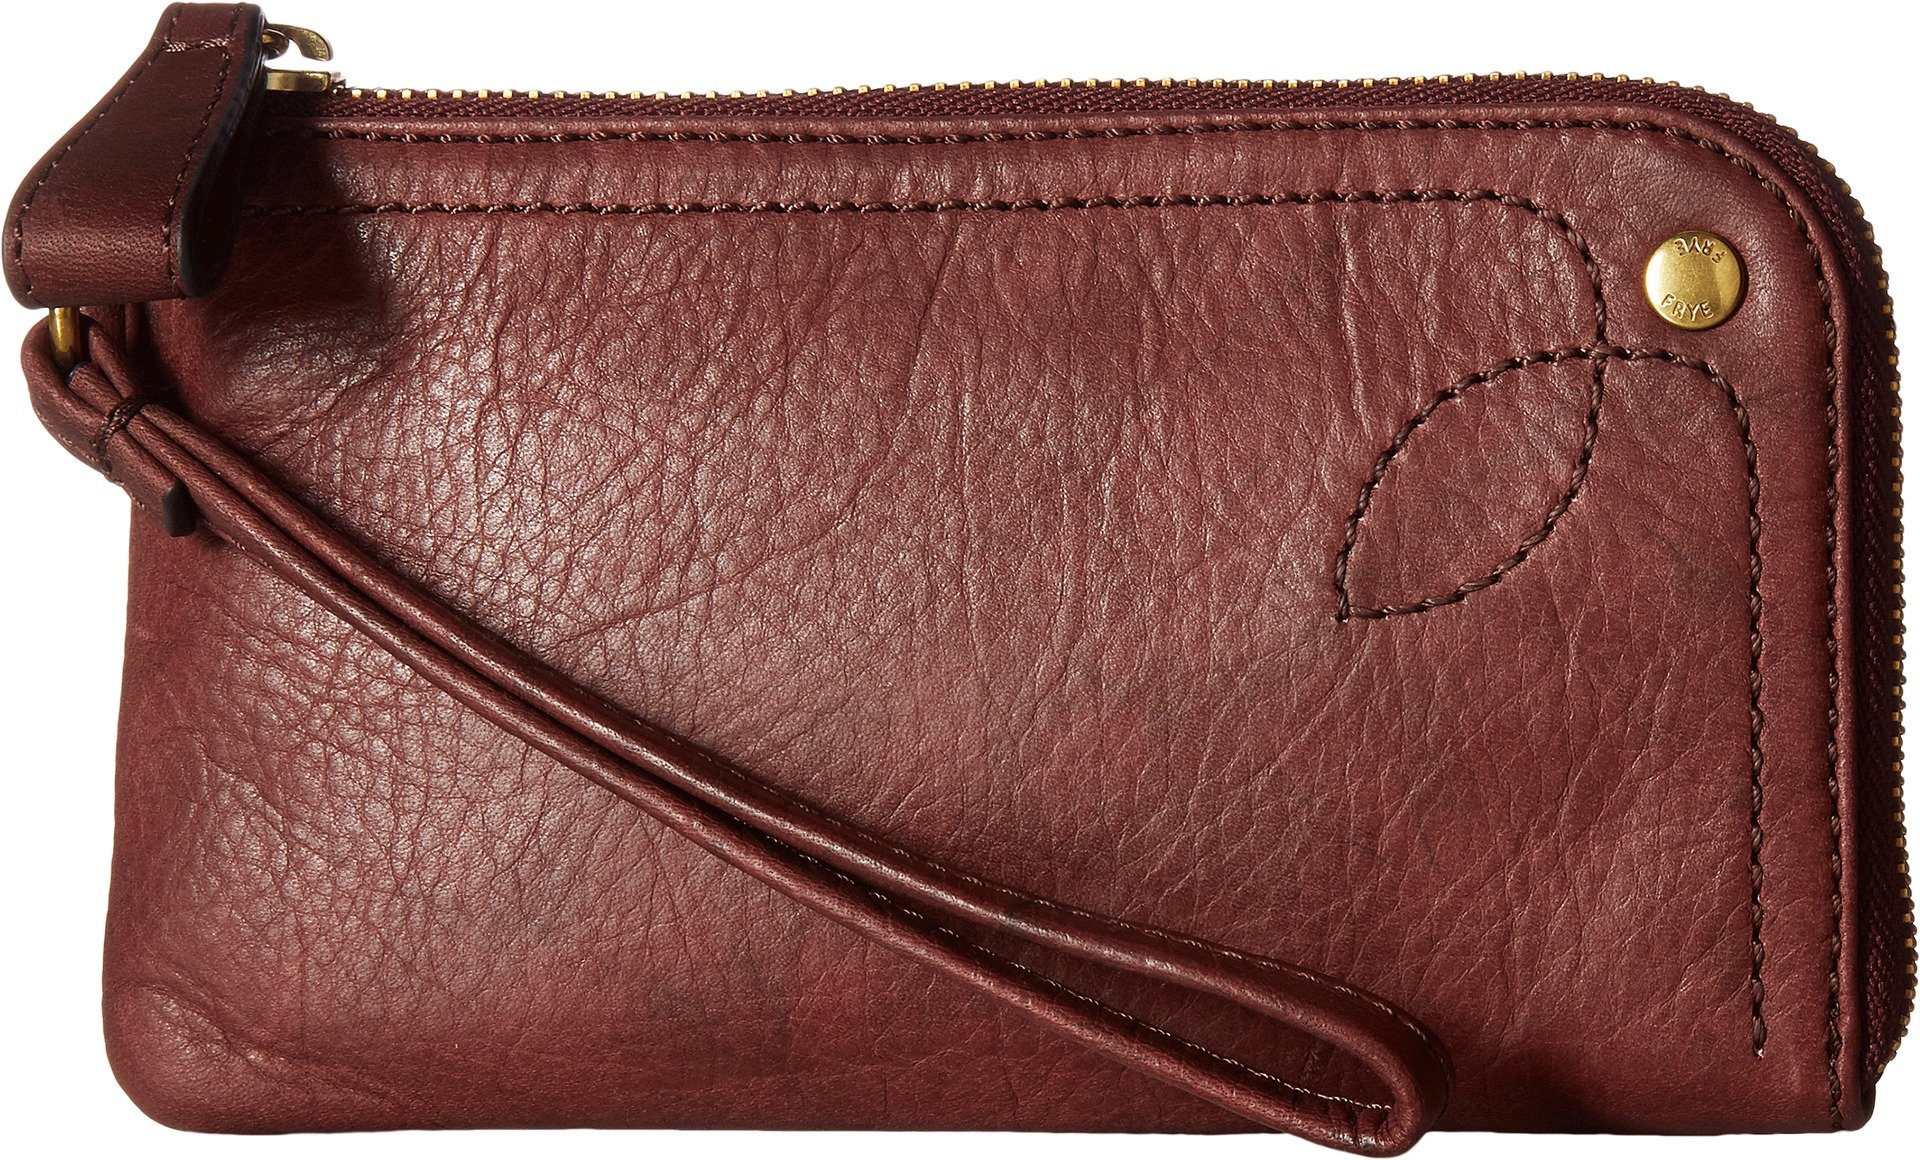 FRYE Campus Rivet Wristlet, Black Cherry